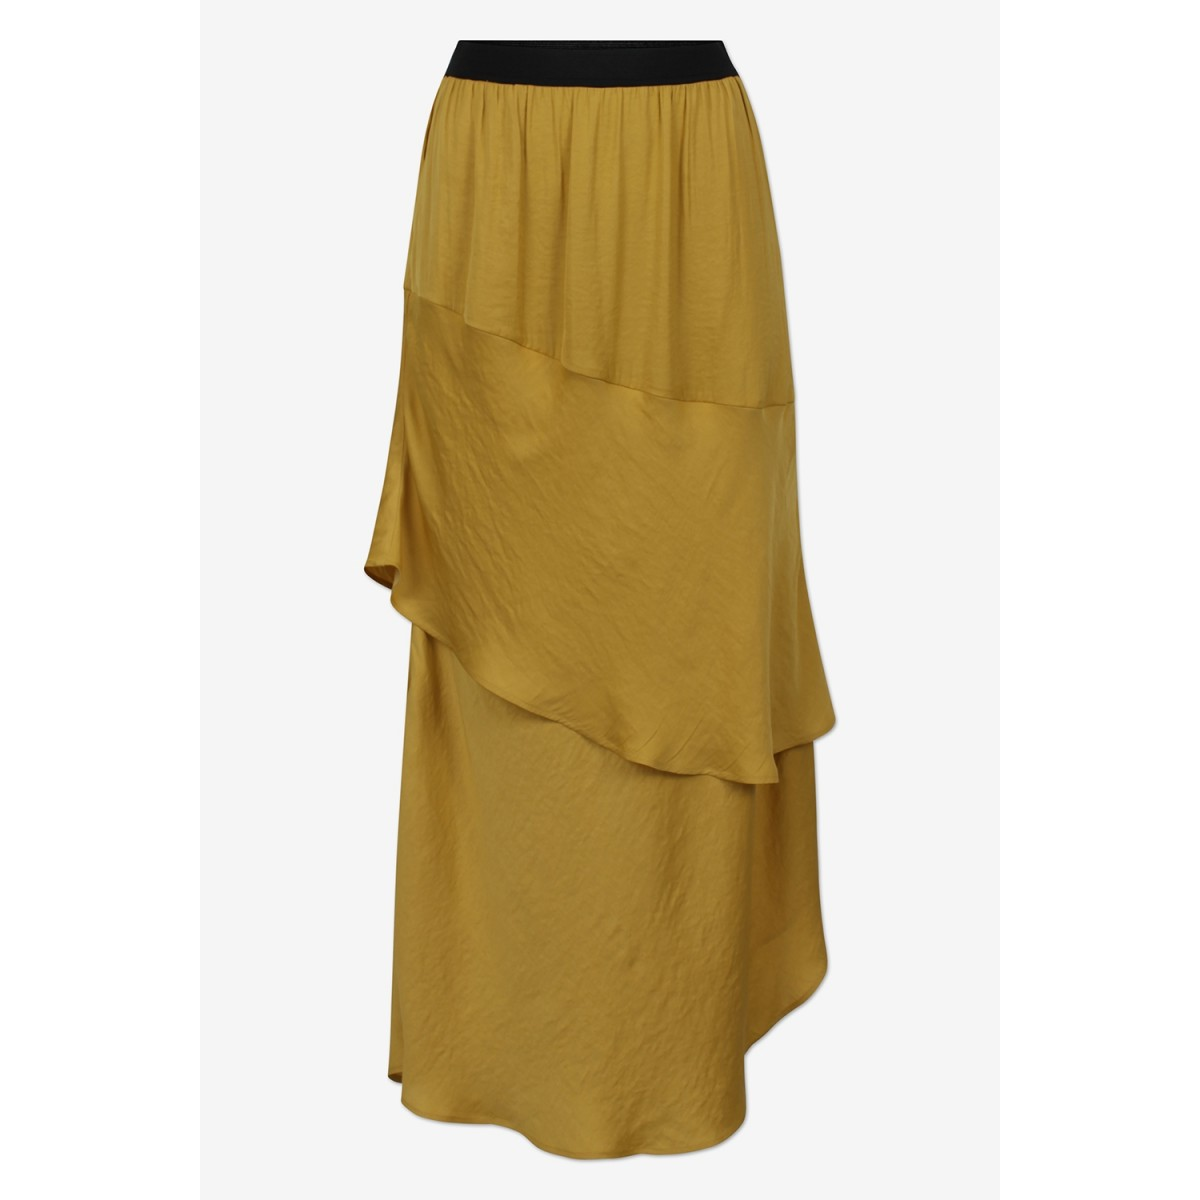 Six Ames Samour Special Edition Skirt C3162 Curry Yelow-32